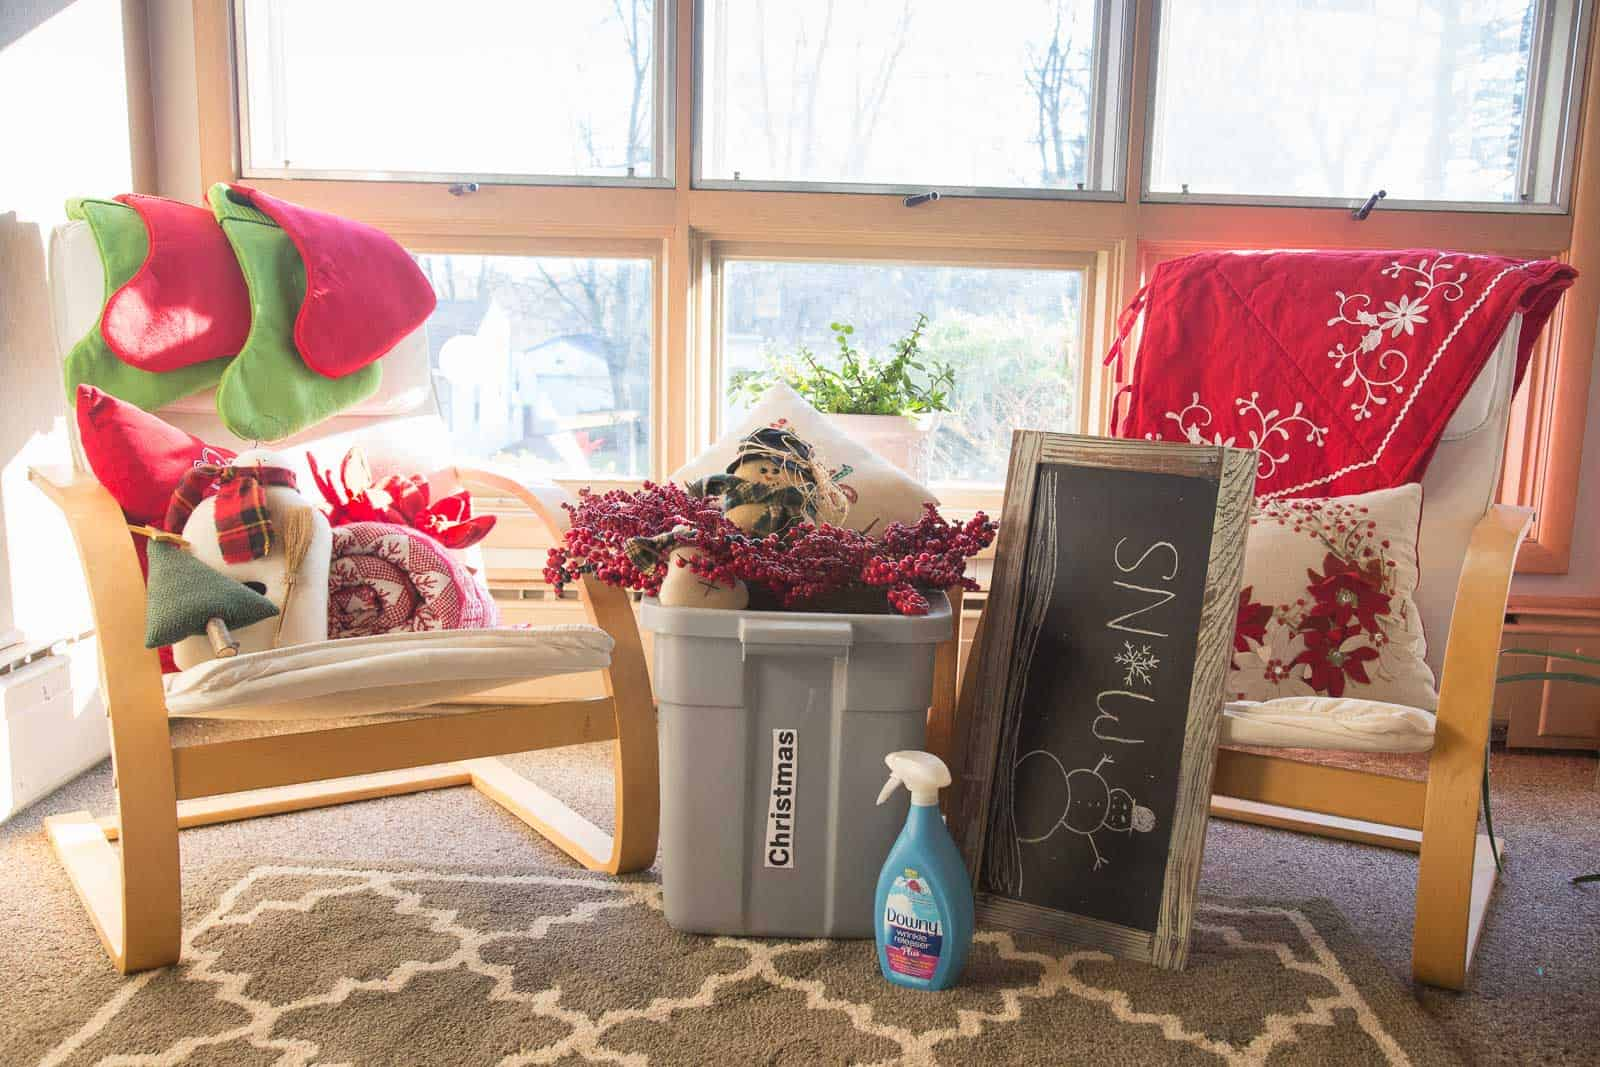 Dont miss the opportunity to declutter holiday decorations this next grab yourself a recycling bin a garbage can and three cardboard boxes label them donate give save solutioingenieria Gallery